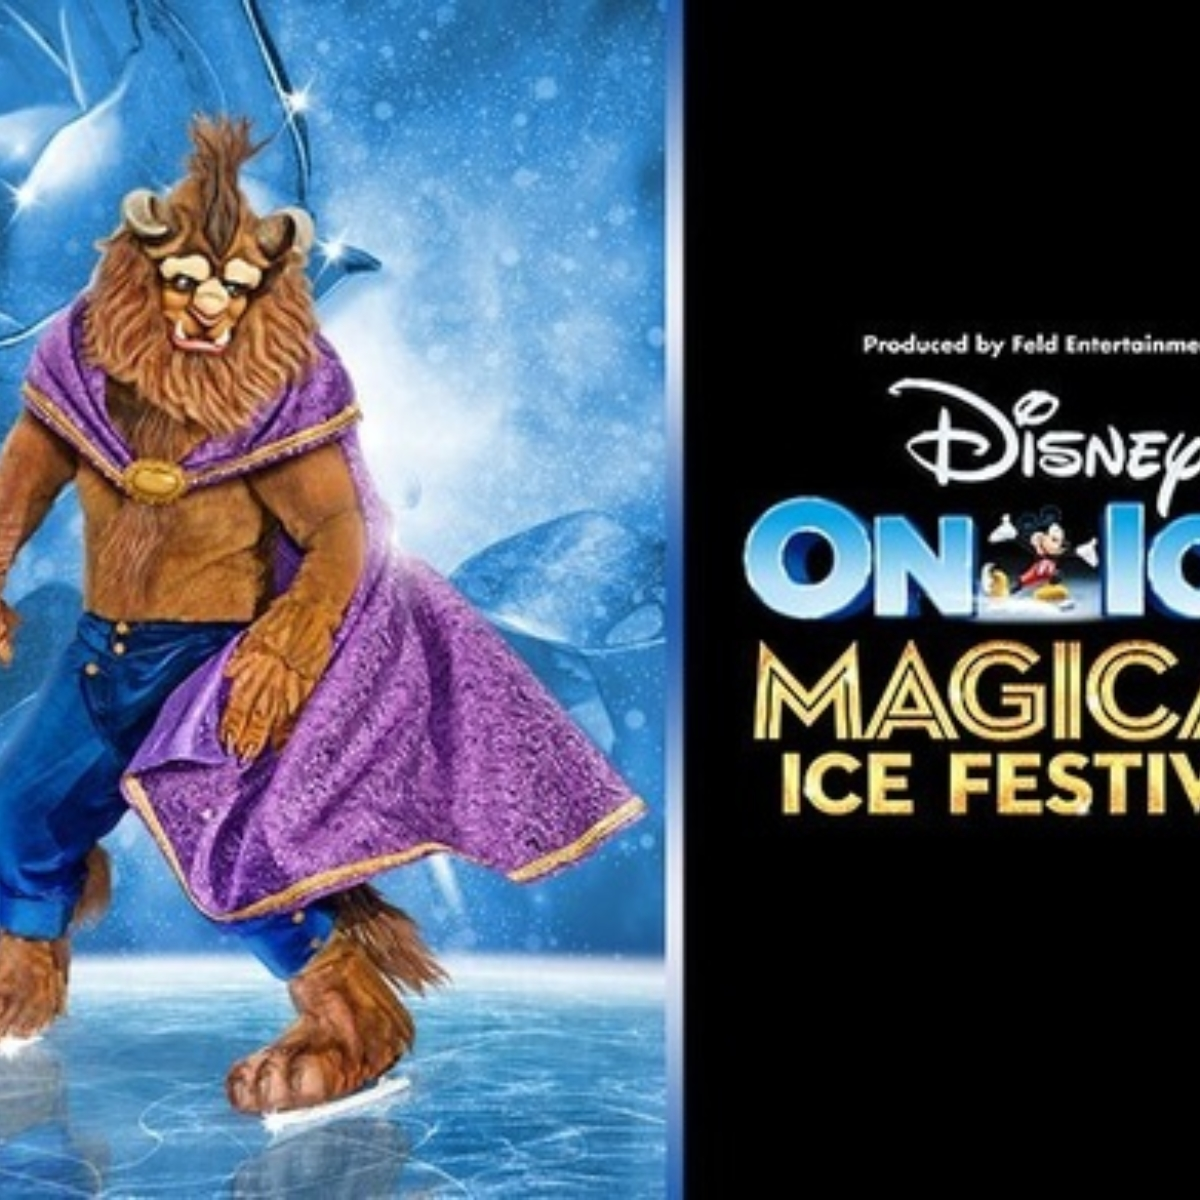 Disney On Ice presents Magical Ice Festival (Glasgow) Images